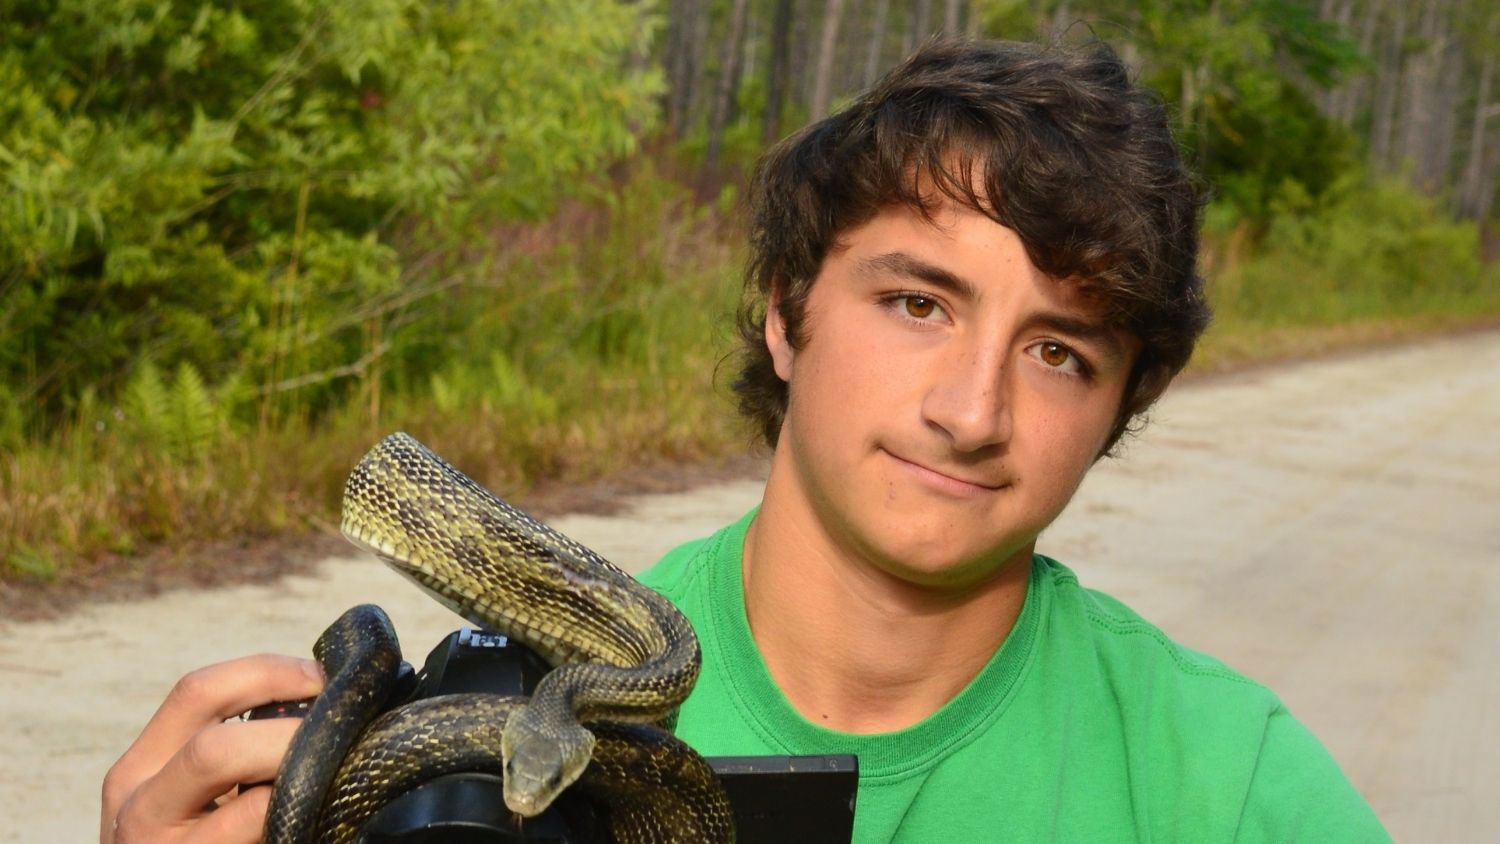 Ben Zino with a snake - CNR Student Ben Zino Promoting Wildlife Conservation One Video at a Time - College of Natural Resources at NCState University